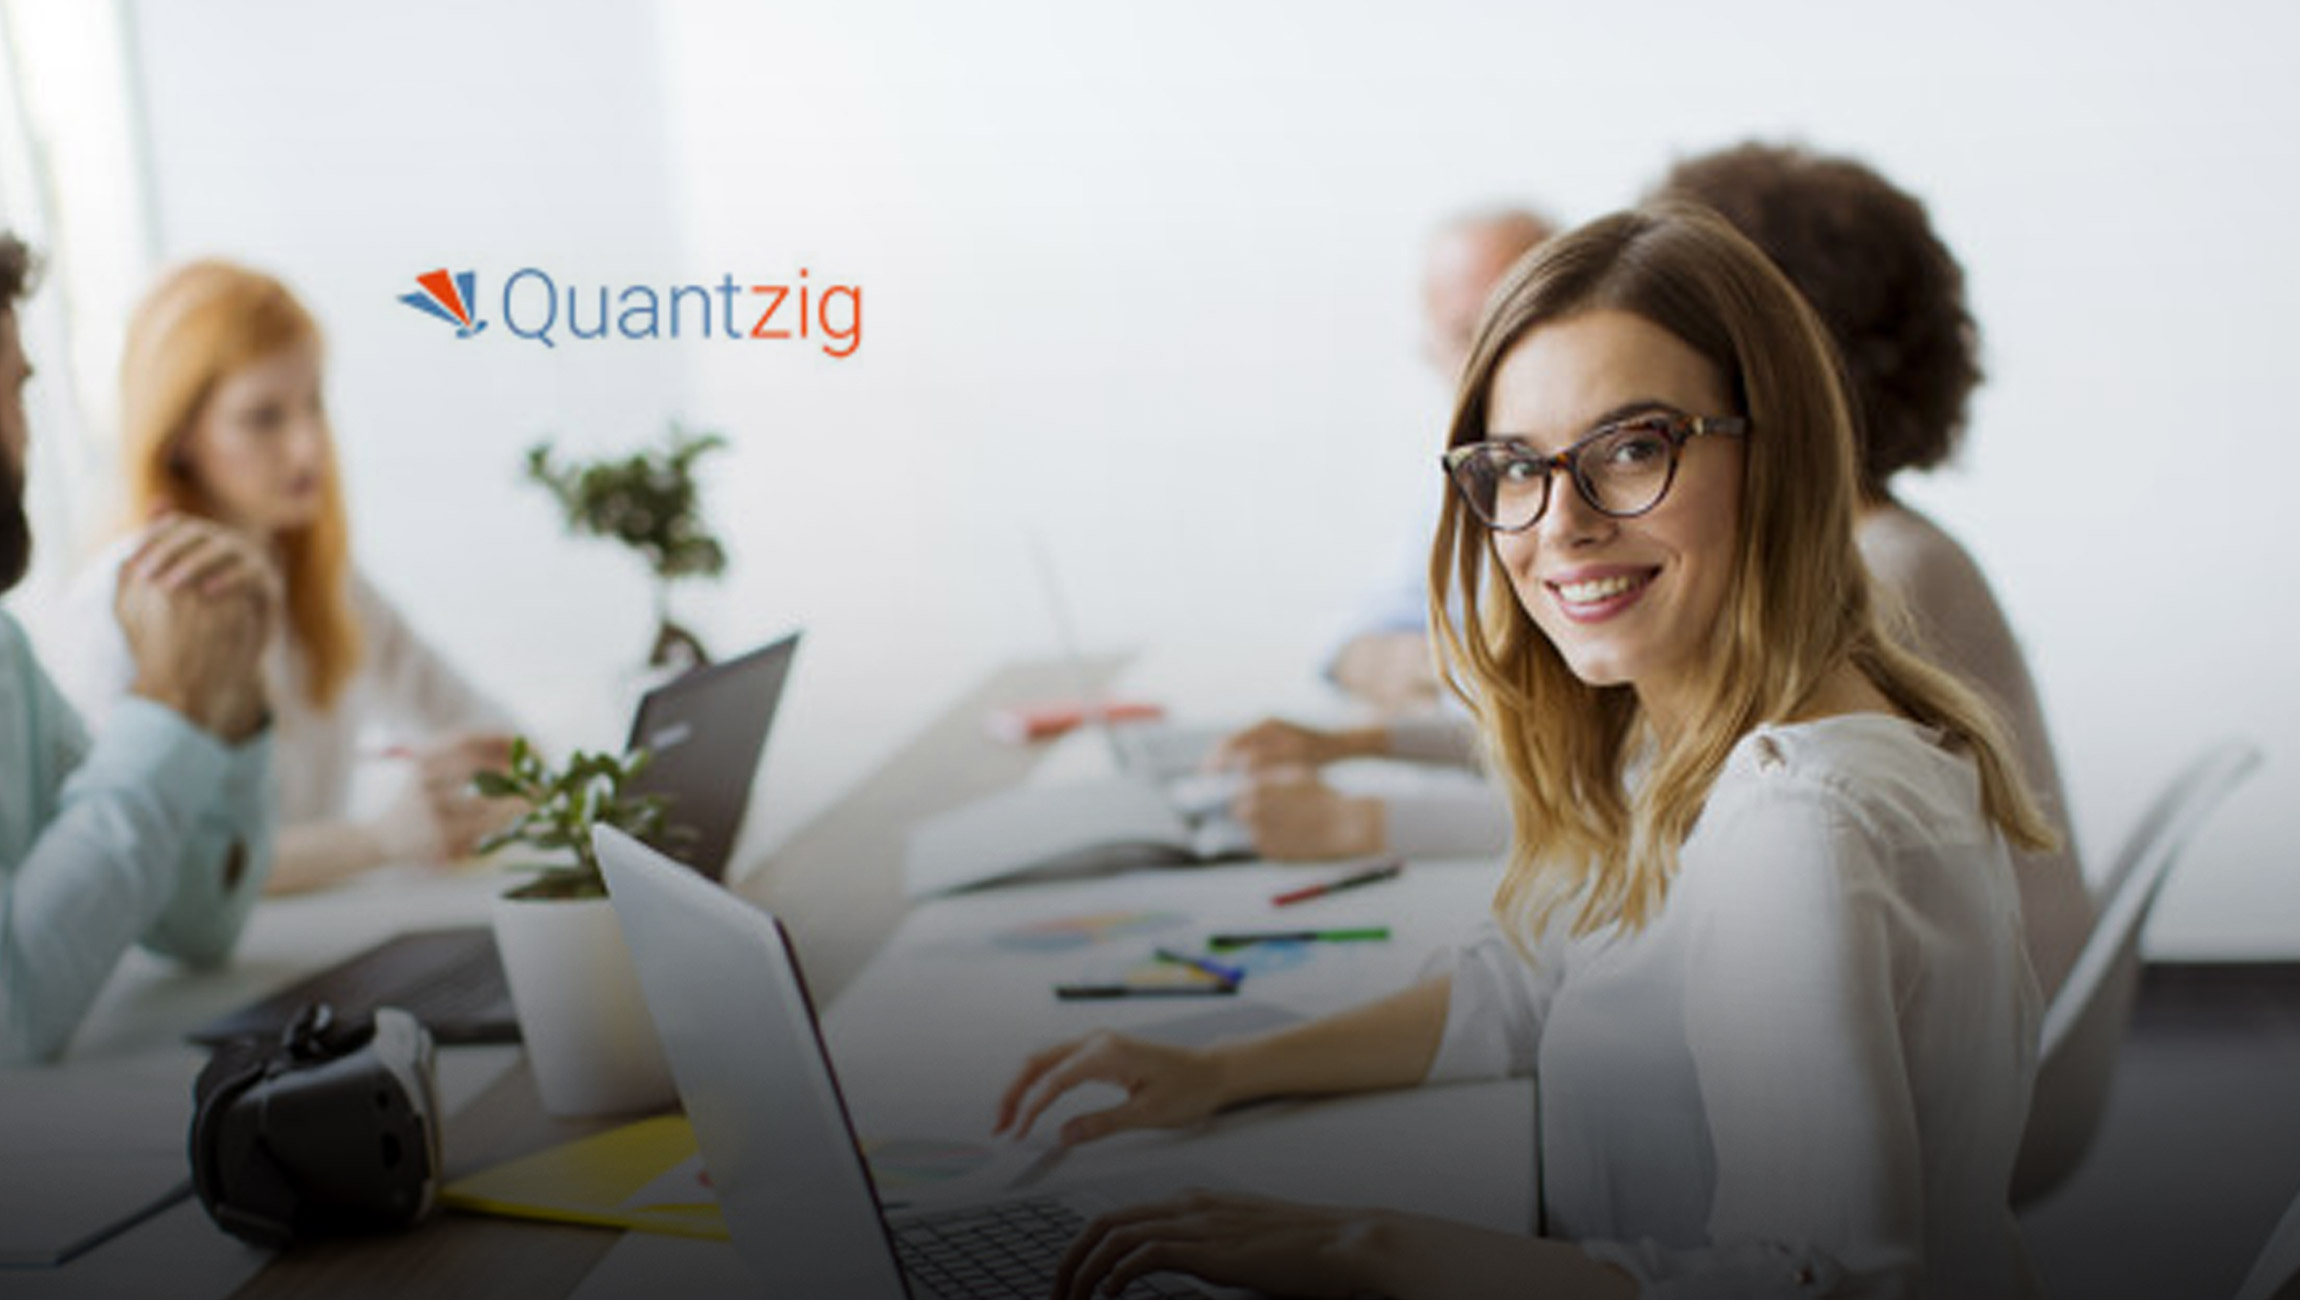 From Data to Action - Use of Advanced Analytics in Supply Chain Management | Webinar by Quantzig